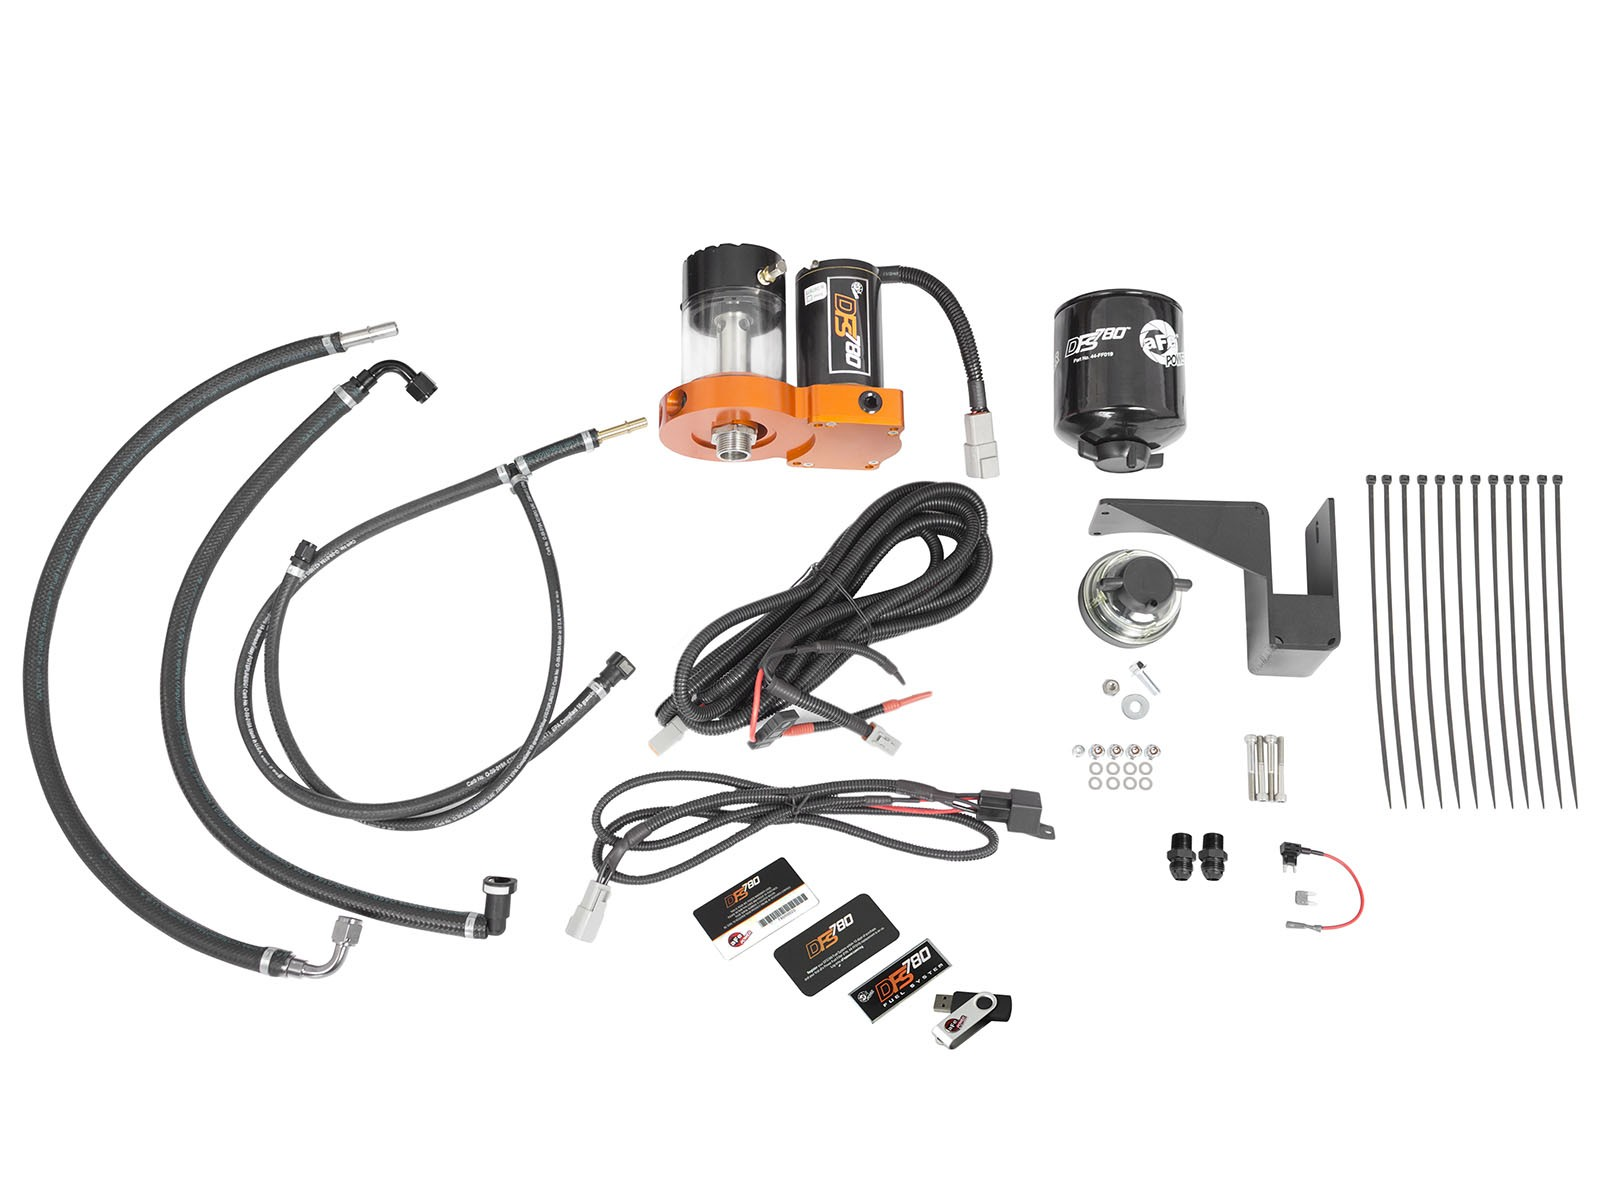 Dfs780 Fuel System Full Time Operation Afe Power 87 Gmc V3500 Tail Light Wiring Next